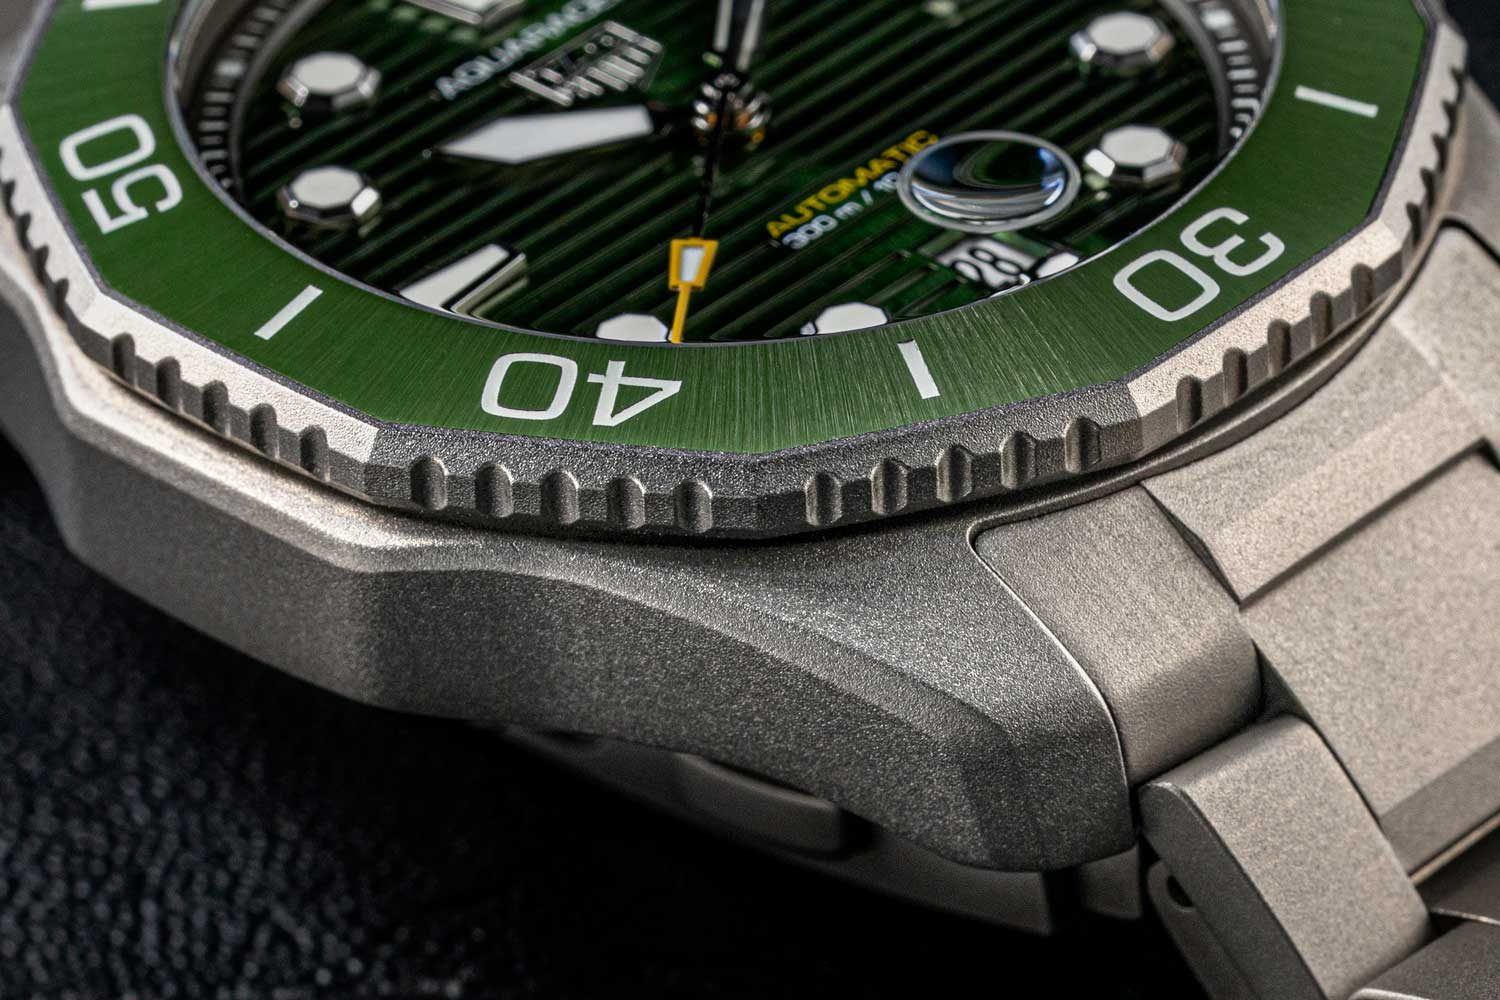 The Aquaracer Professional 300 measures 12.2mm in thickness. (©Revolution)